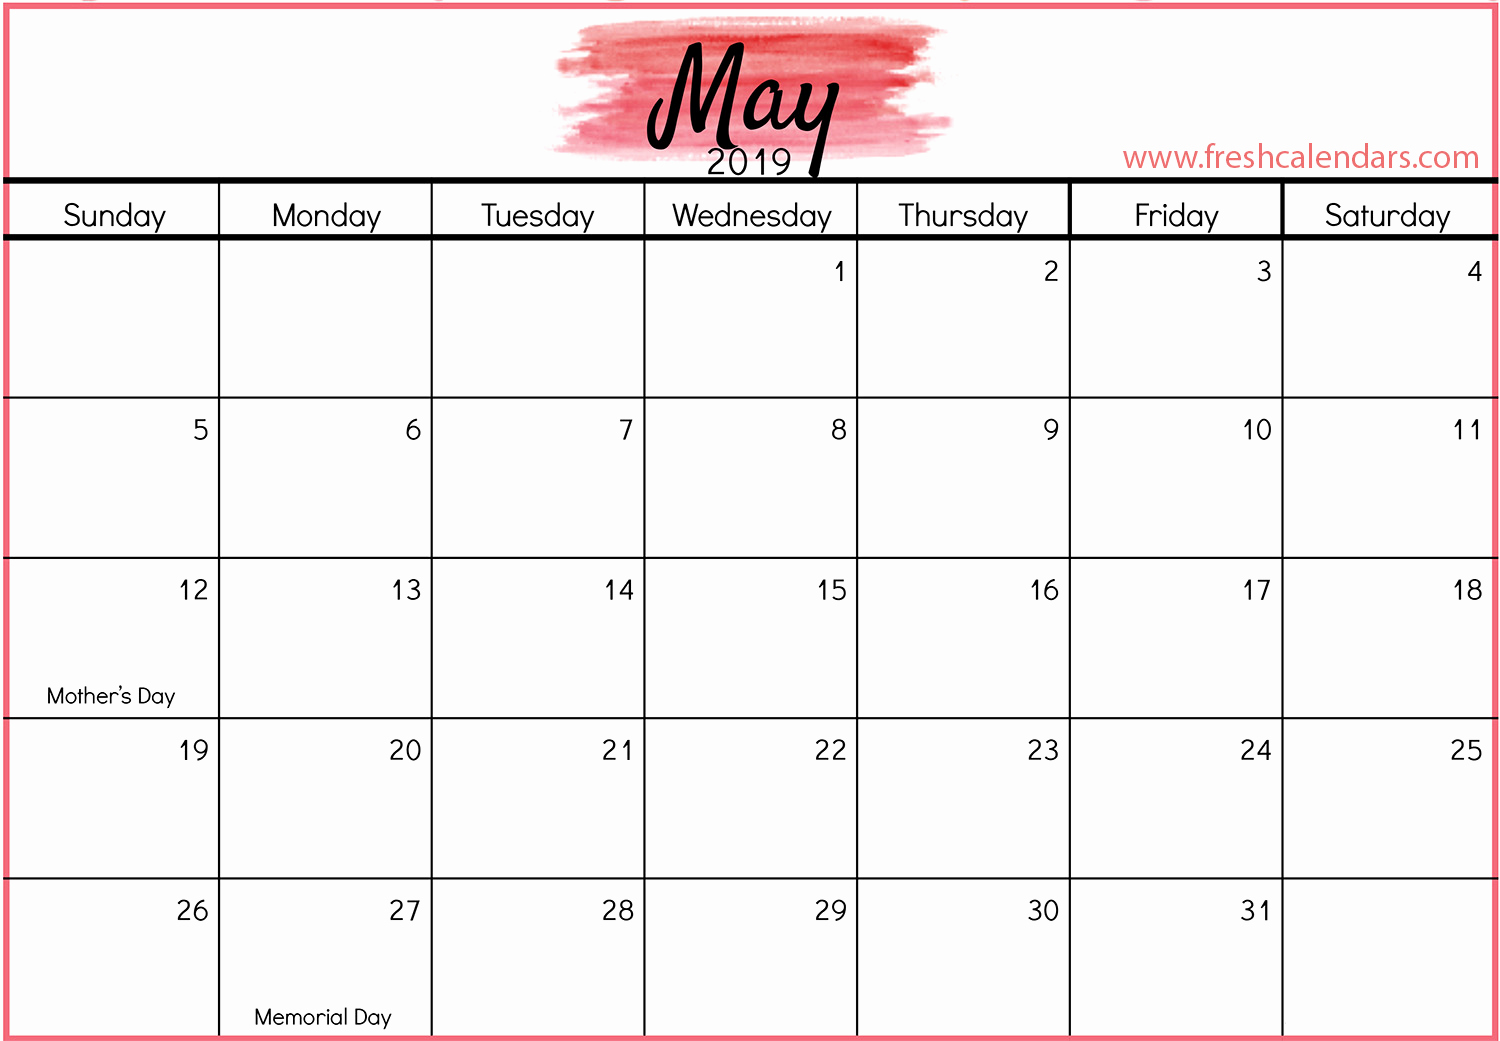 2019 Monthly Calendar Template Best Of May 2019 Calendar Printable Fresh Calendars